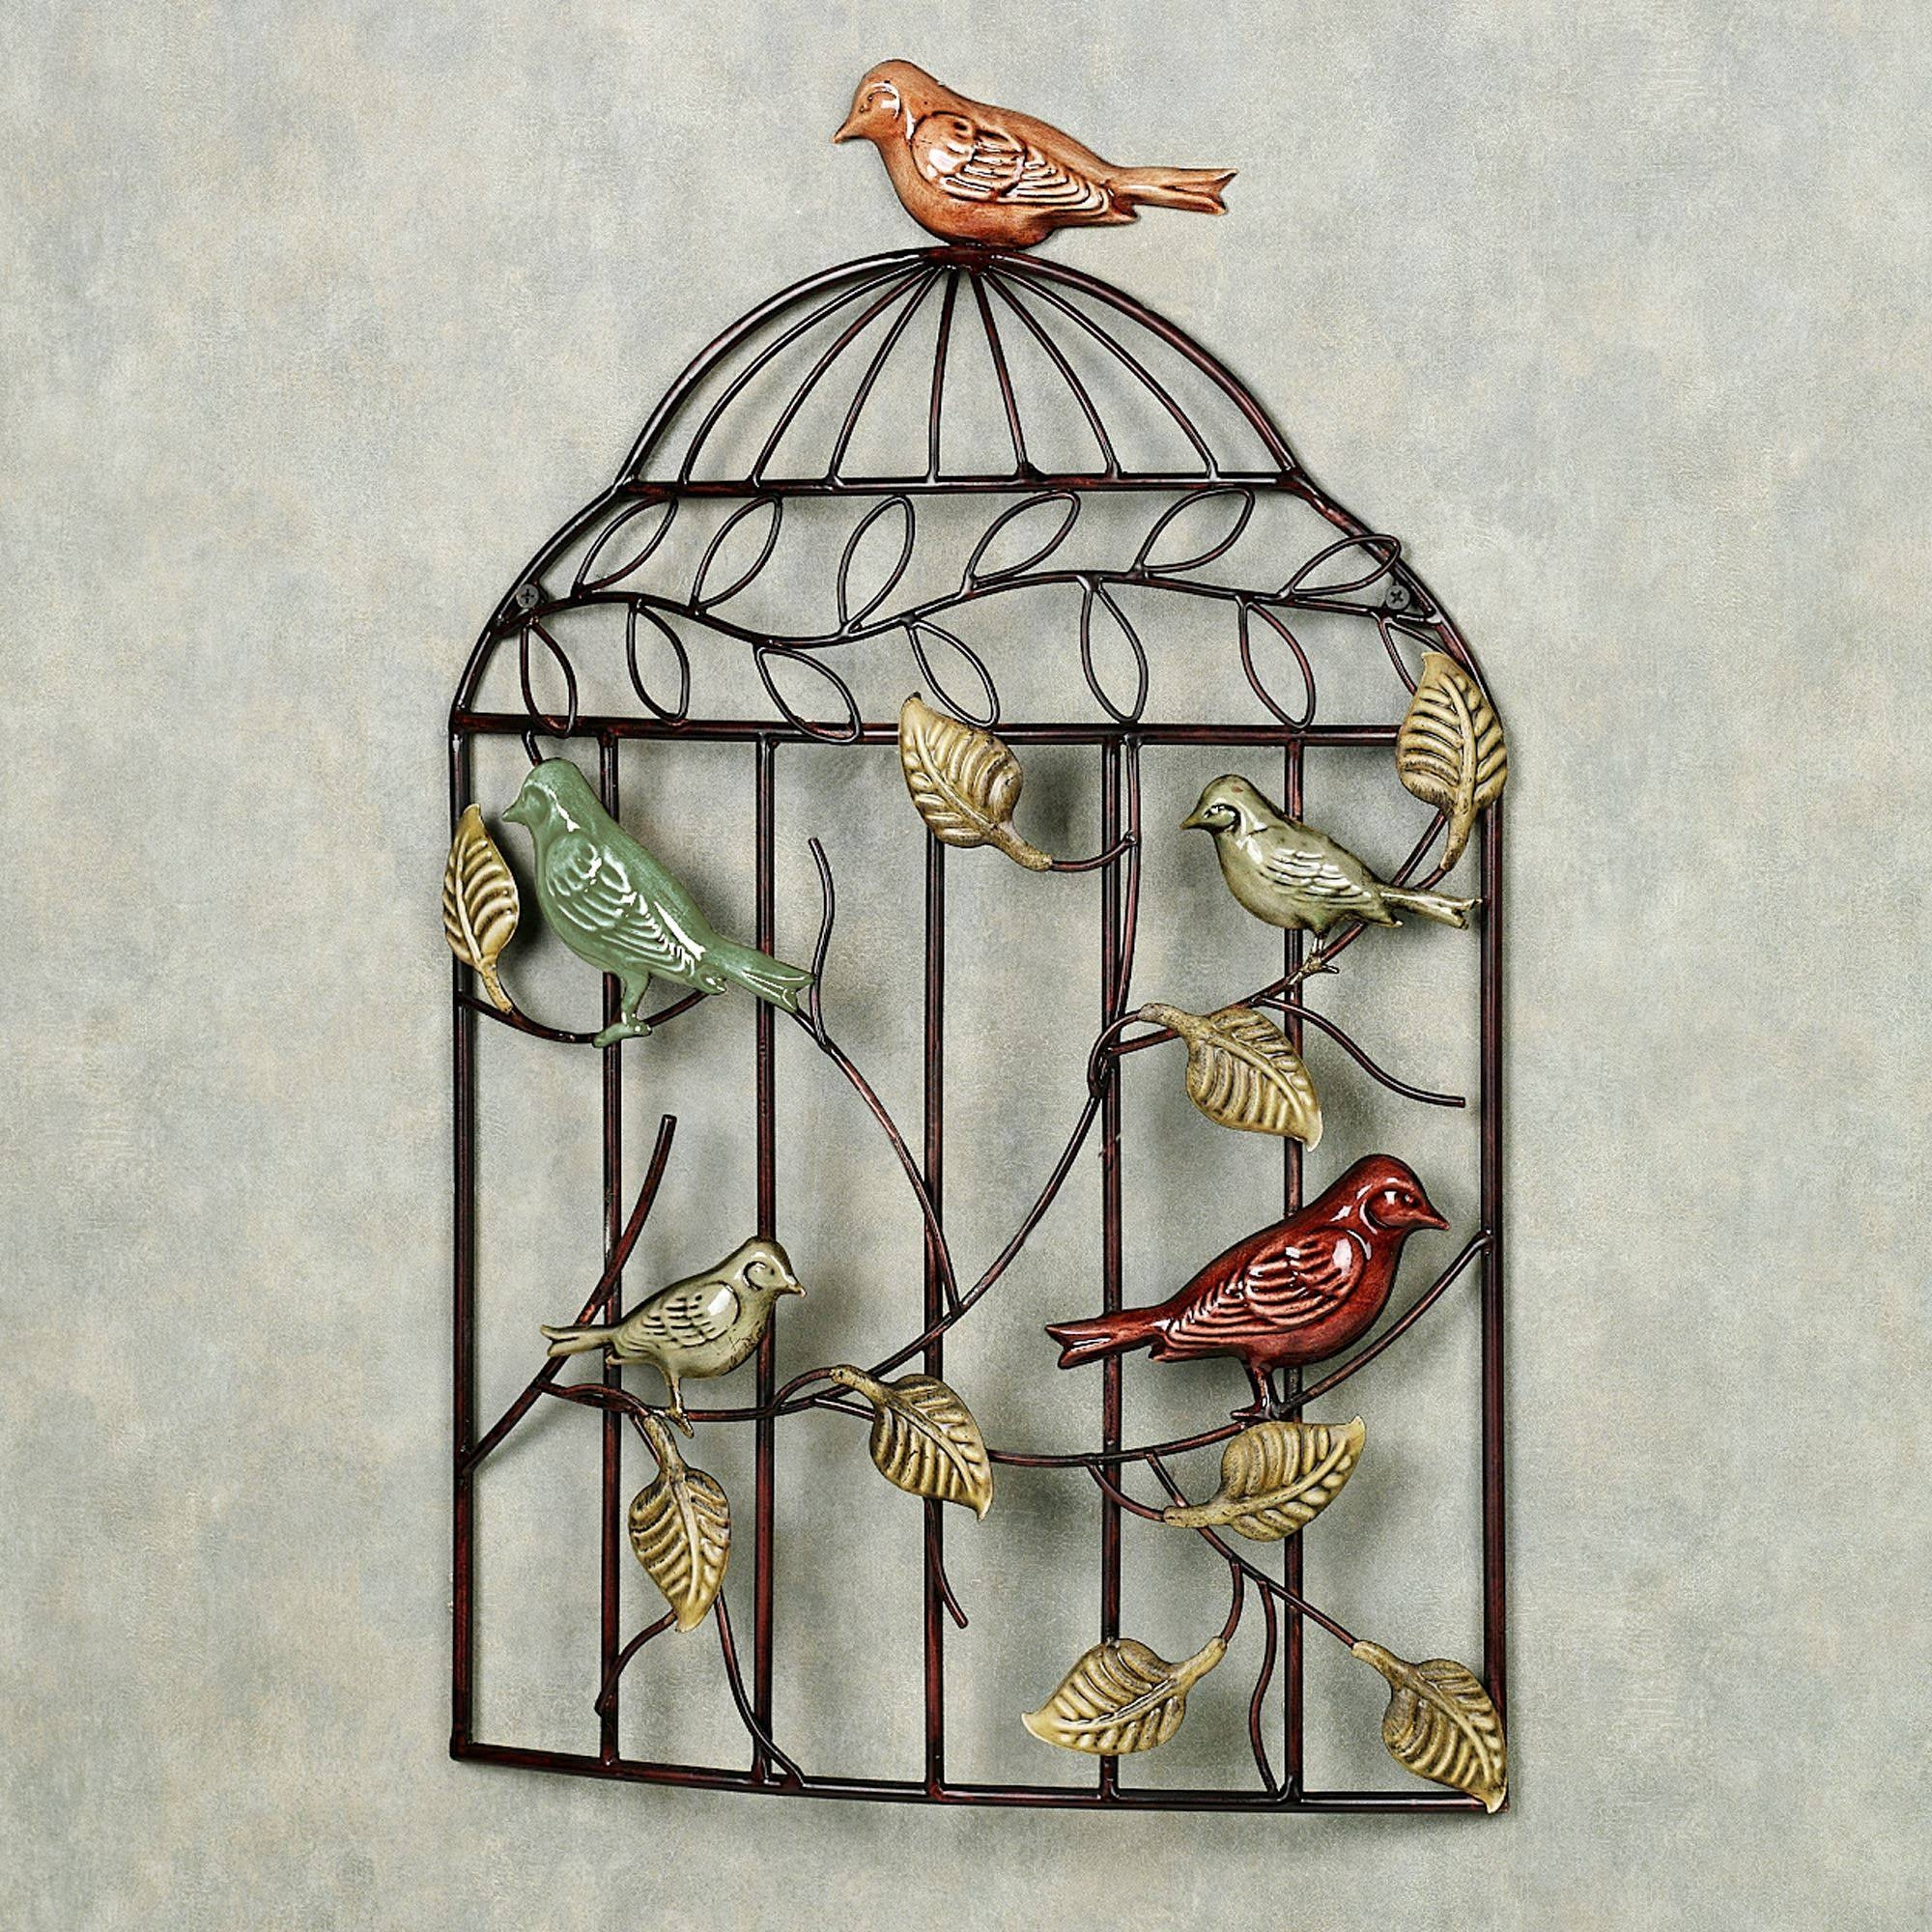 Bird Sanctuary Cage Metal Wall Art Within Latest Birdcage Metal Wall Art (View 3 of 20)